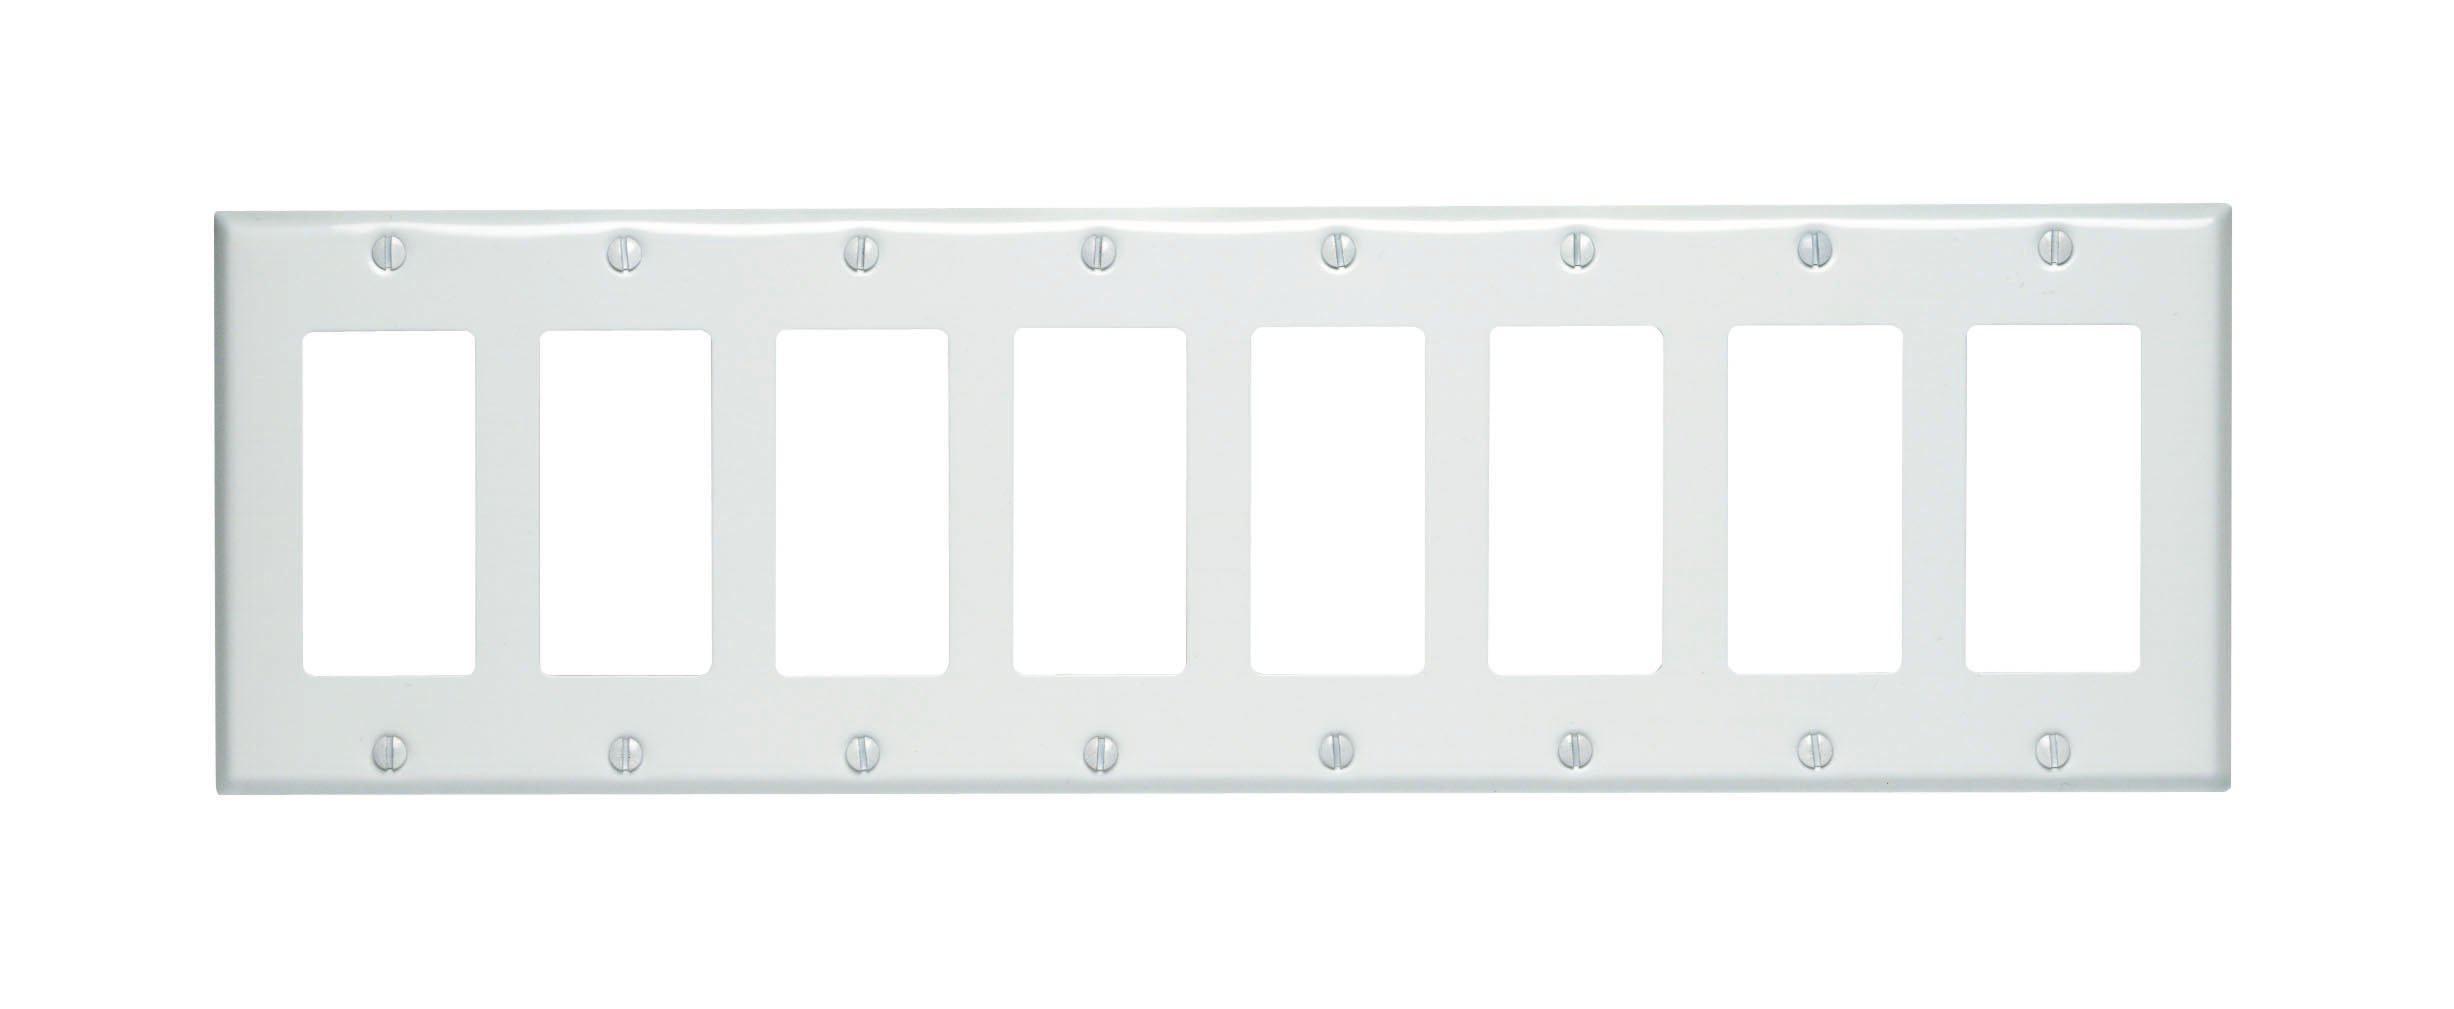 Leviton 80408-W 8-Gang Decora/GFCI Device Wallplate, Painted Metal, Device Mount, White by Leviton